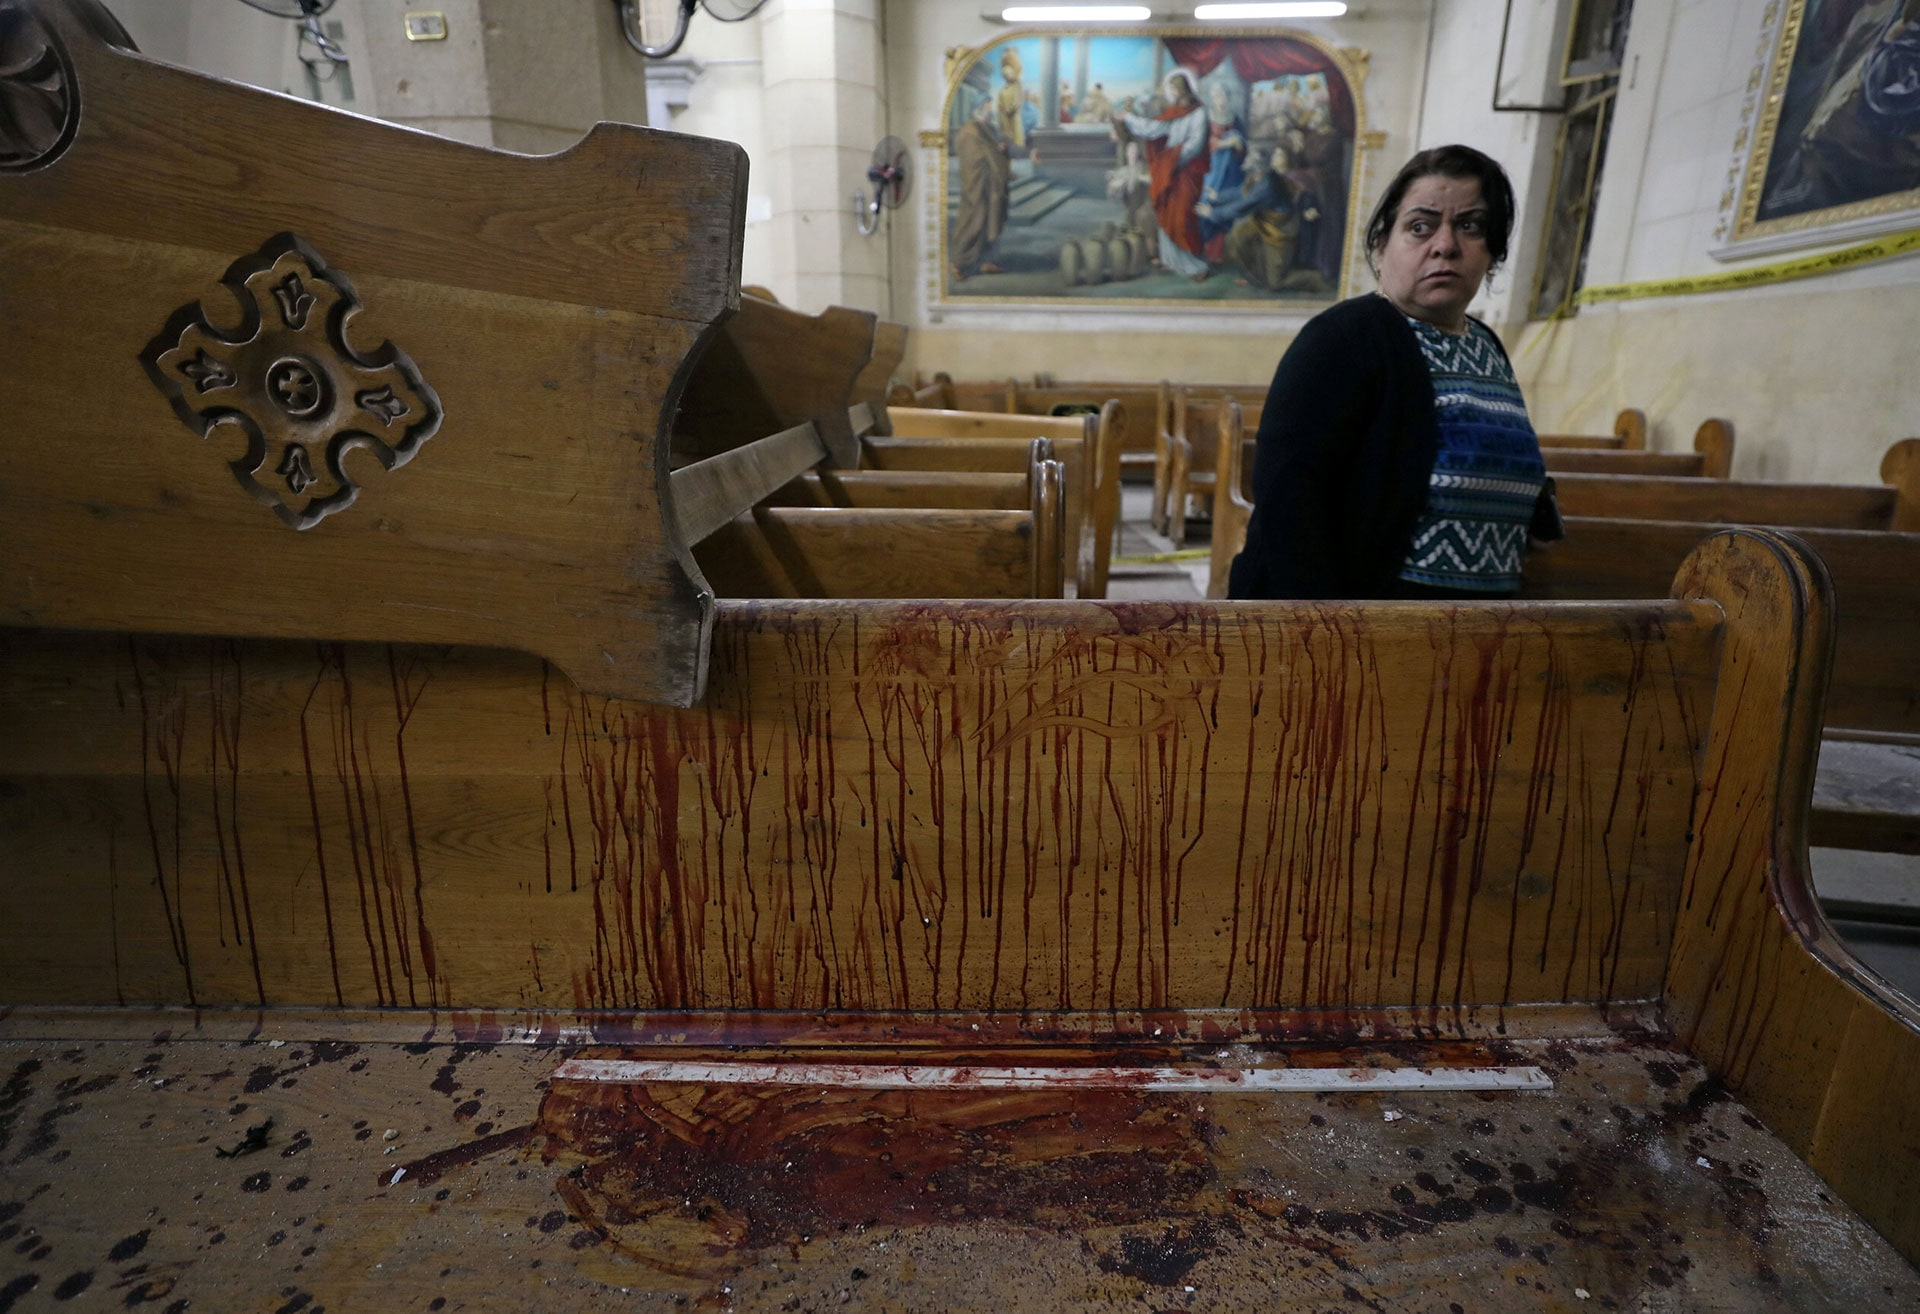 A pew inside a Coptic Christian church is covered in blood